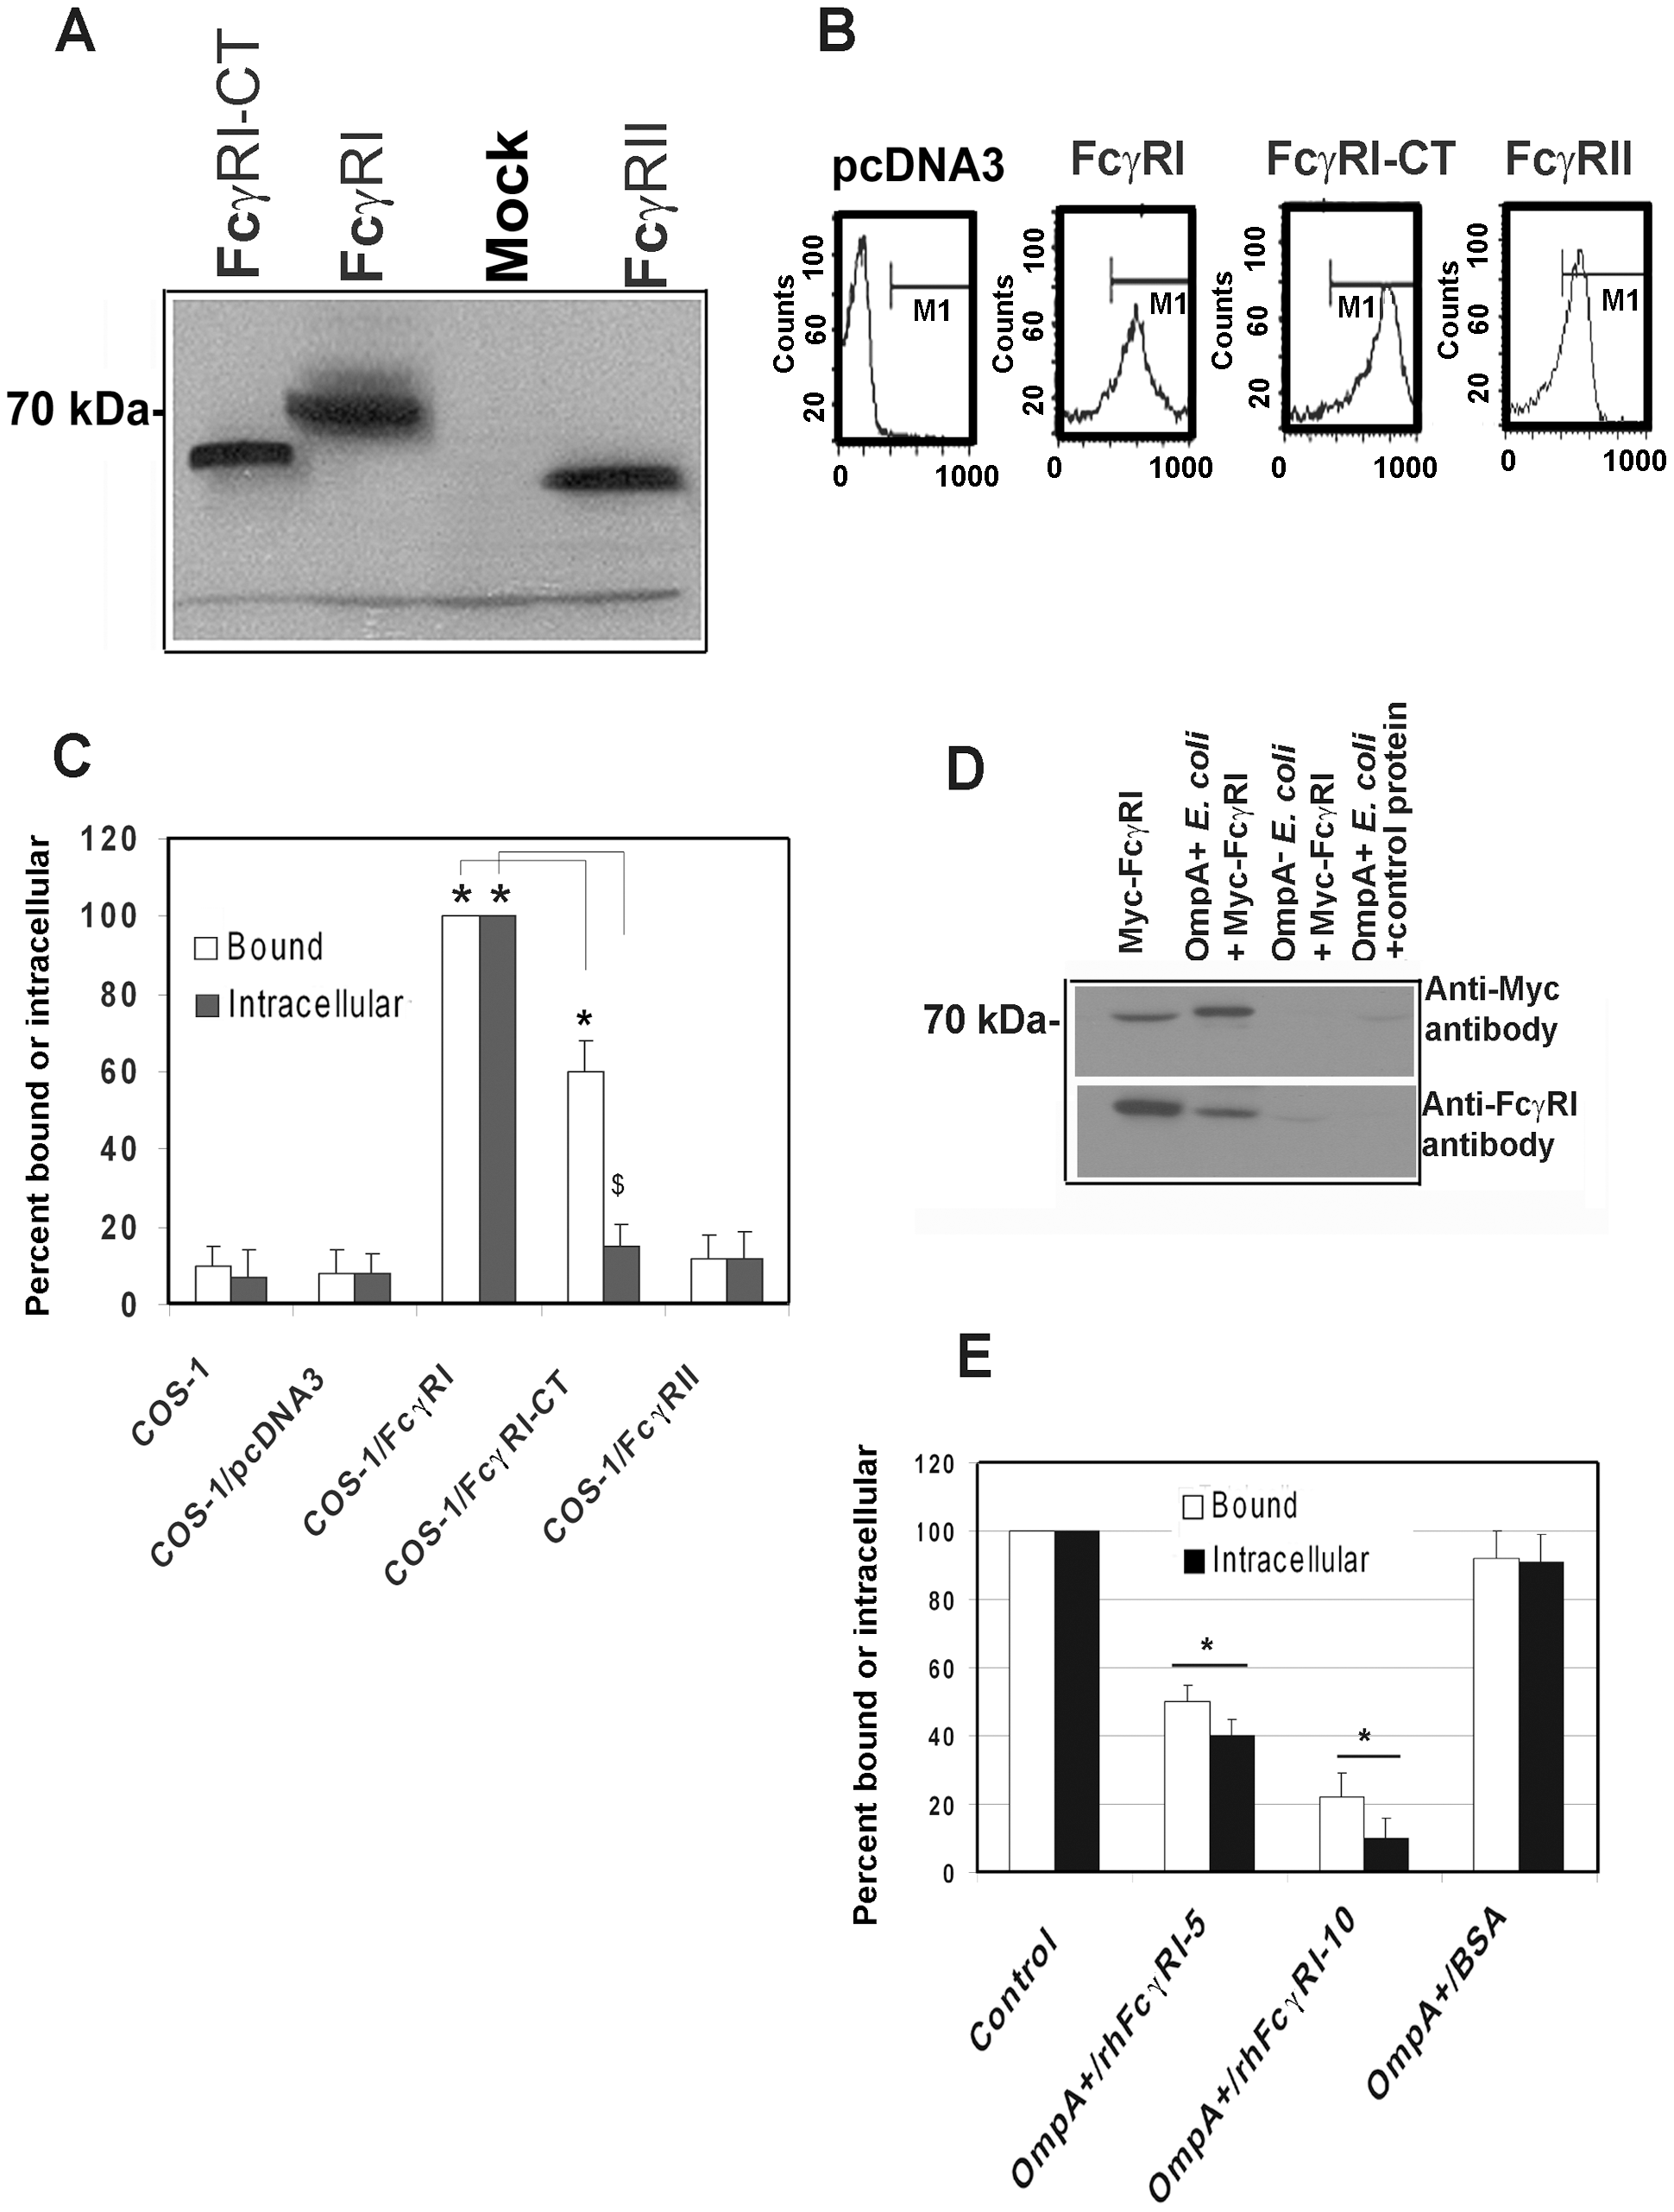 FcγRIa expression is sufficient to facilitate <i>E. coli</i> K1 invasion of COS-1 cells.